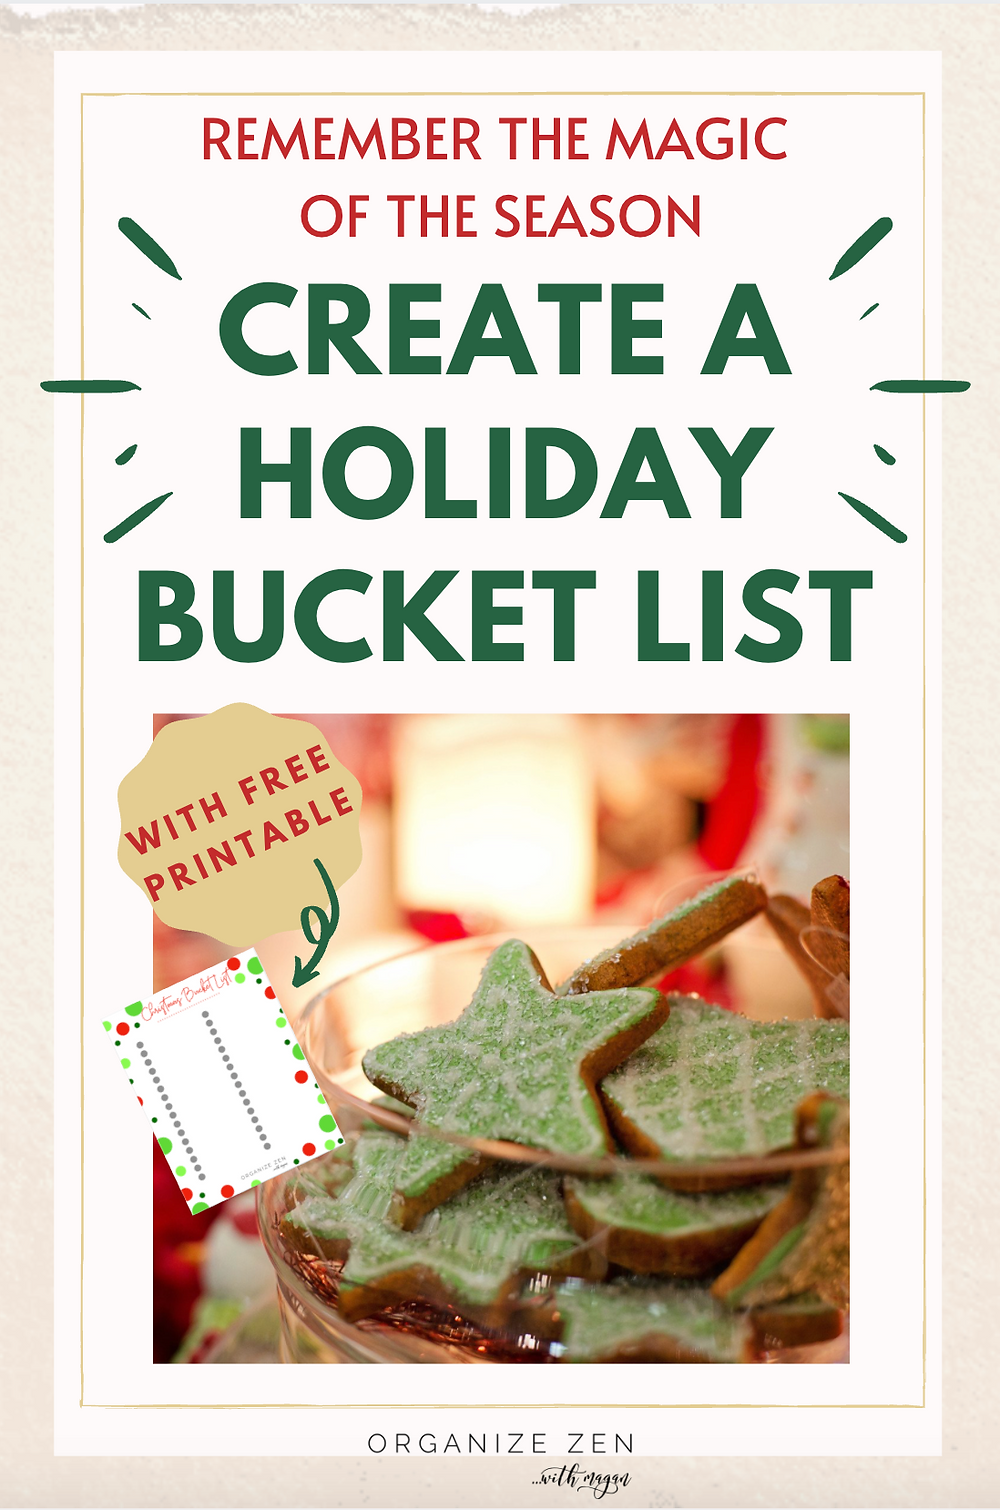 Christmas Cookies with Printable Holiday Bucket List Worksheet